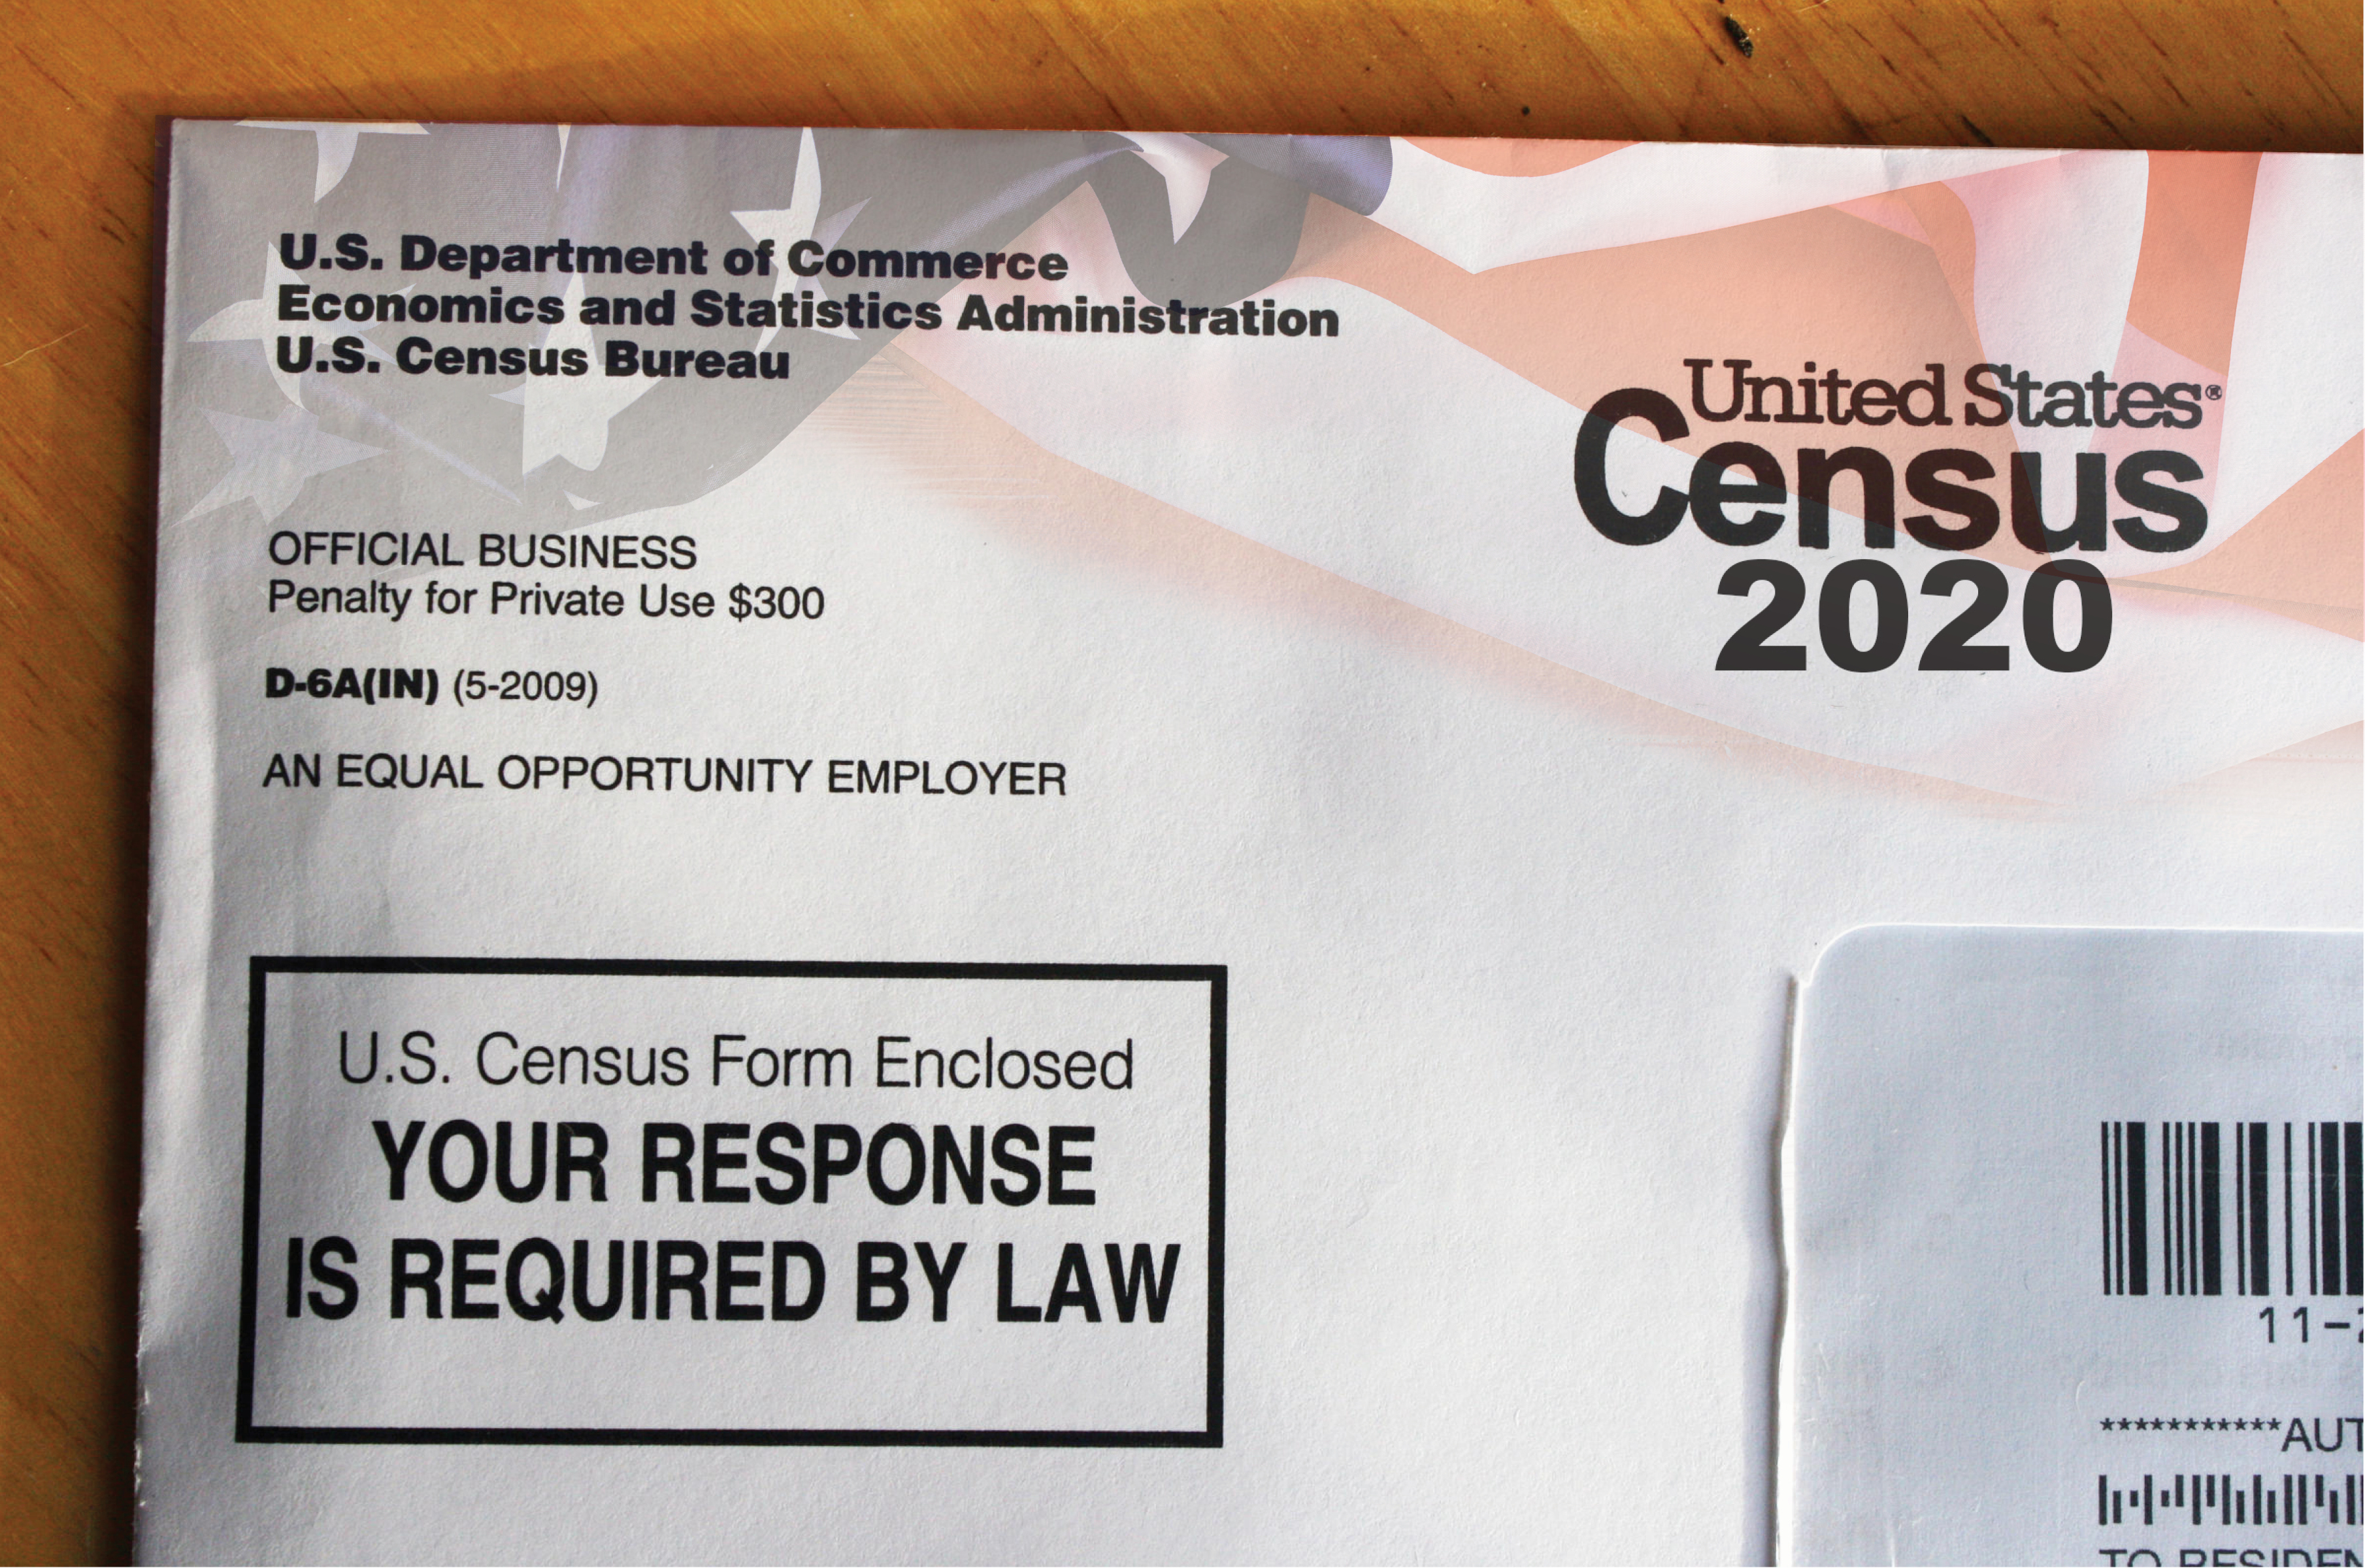 Make Sure You Are Counted in the 2020 Census